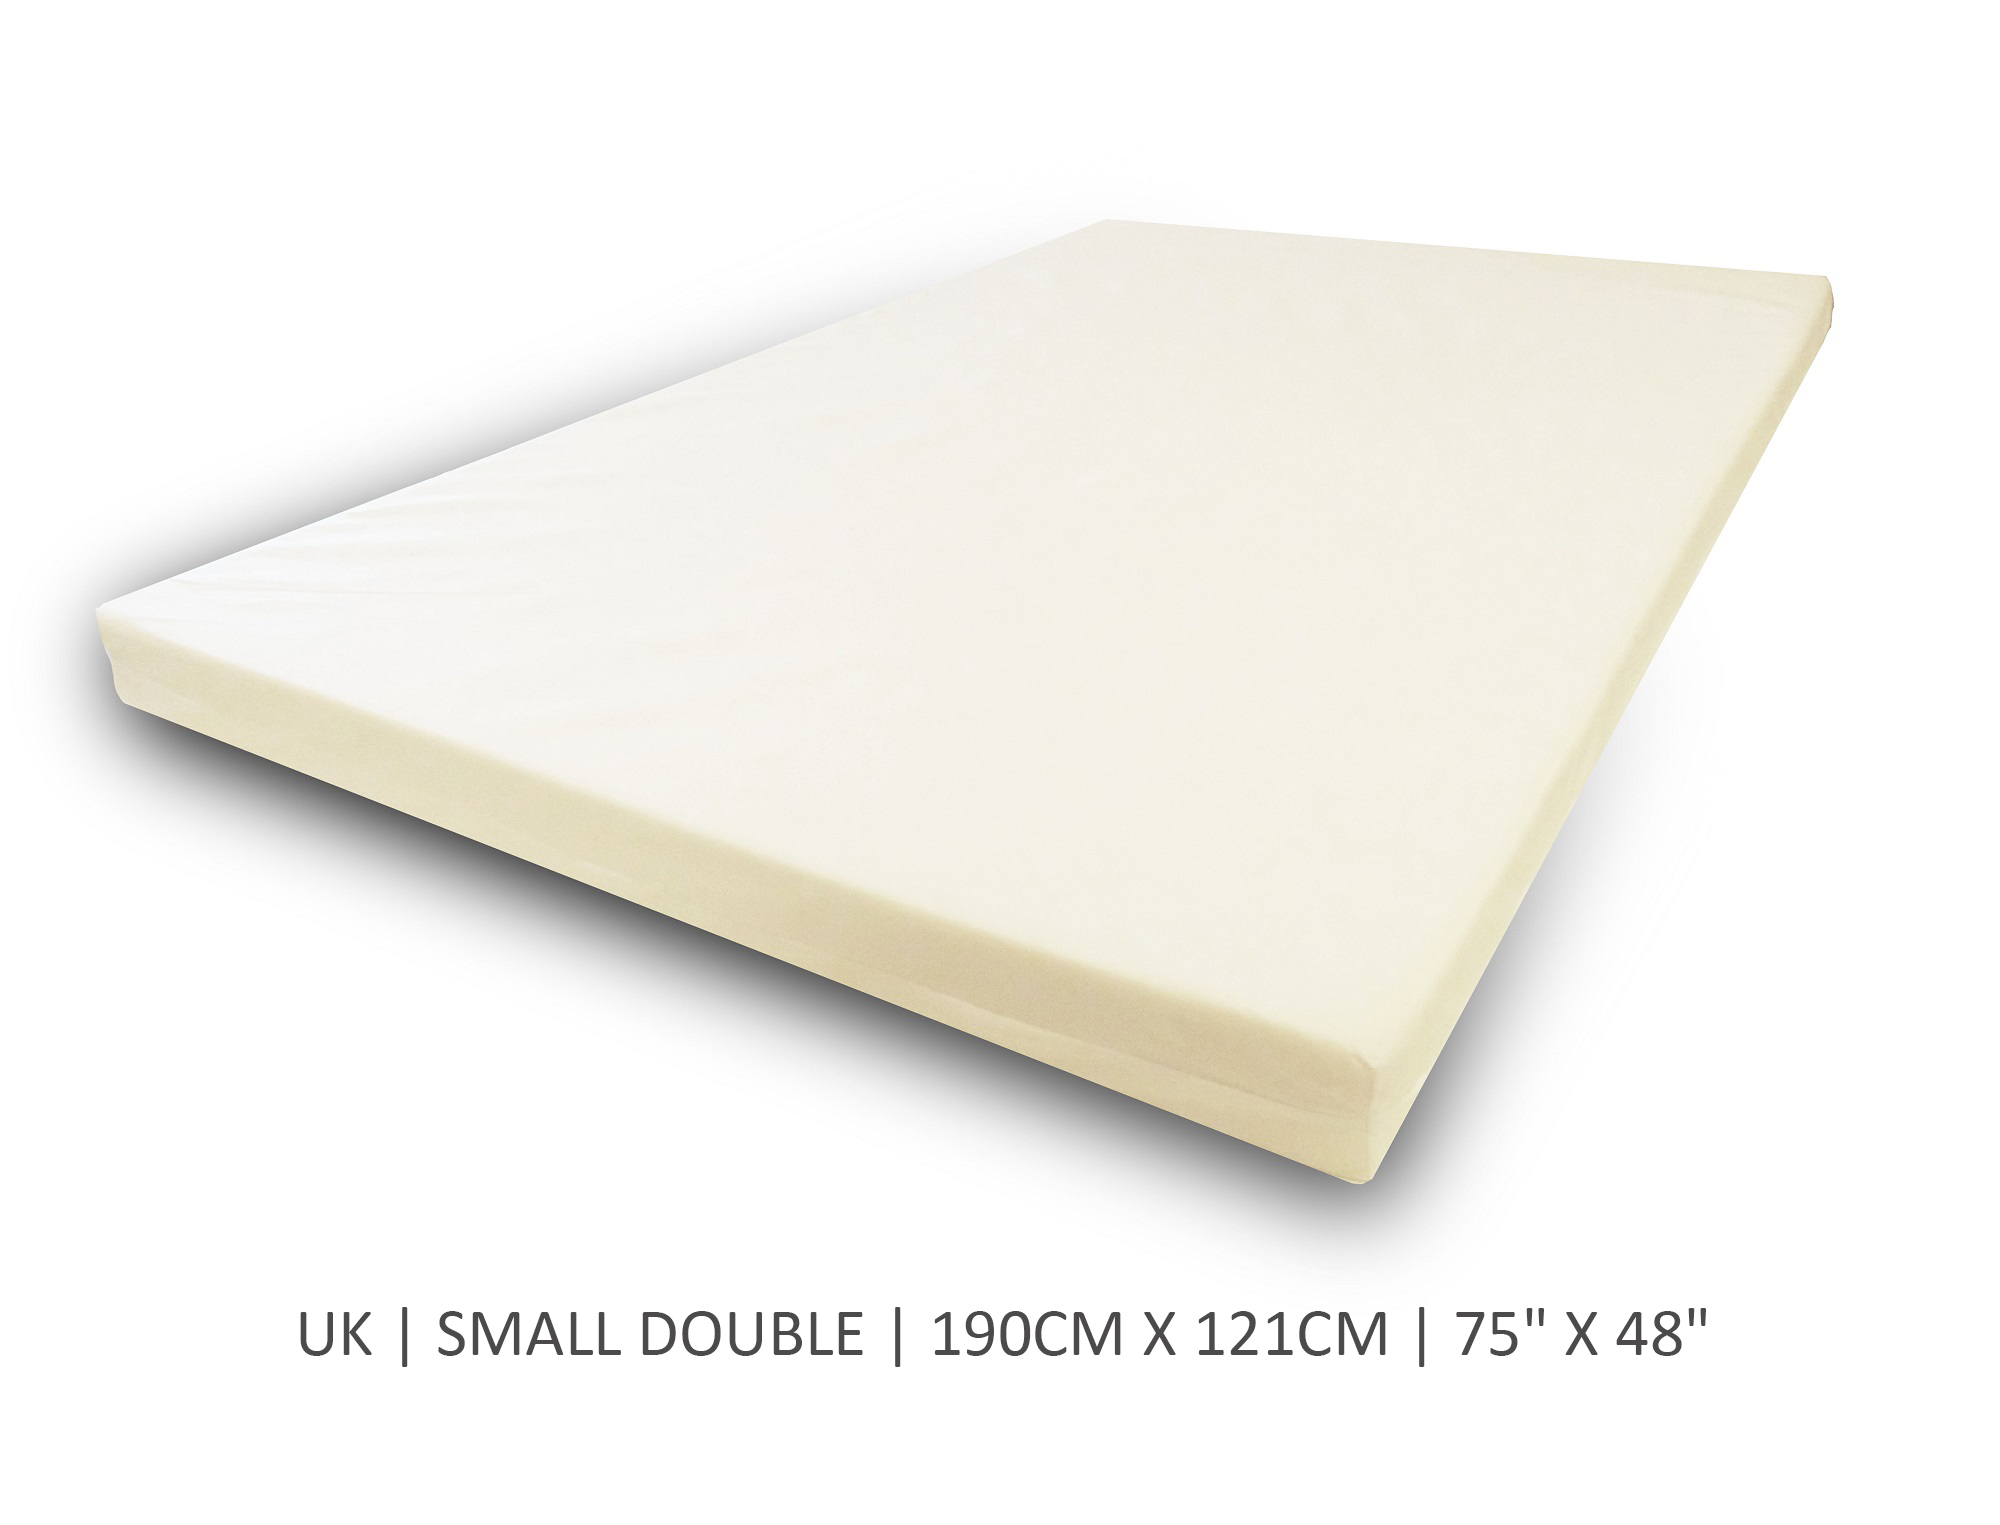 ... Mattress Pad Bed Topper. Made in the USA | Mattresses & Bedding Online